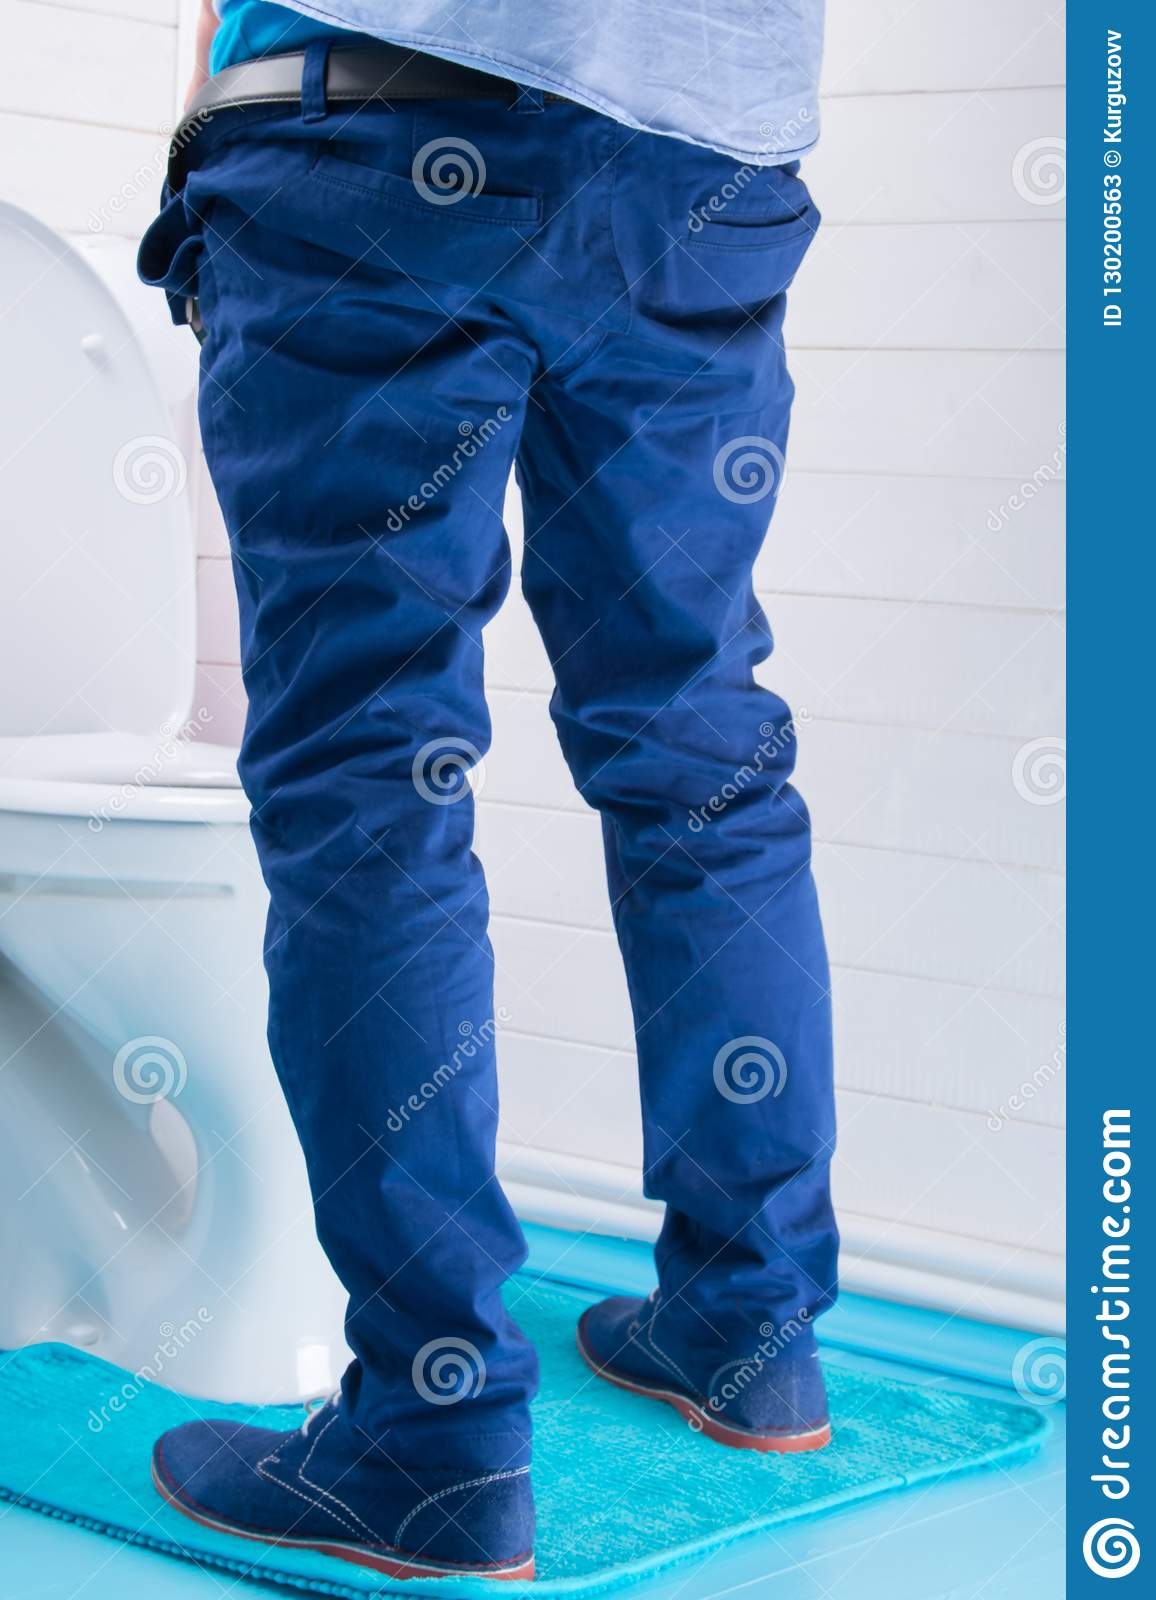 Man In Blue Pants Peeing In Toilet, Rear View Stock Image ...